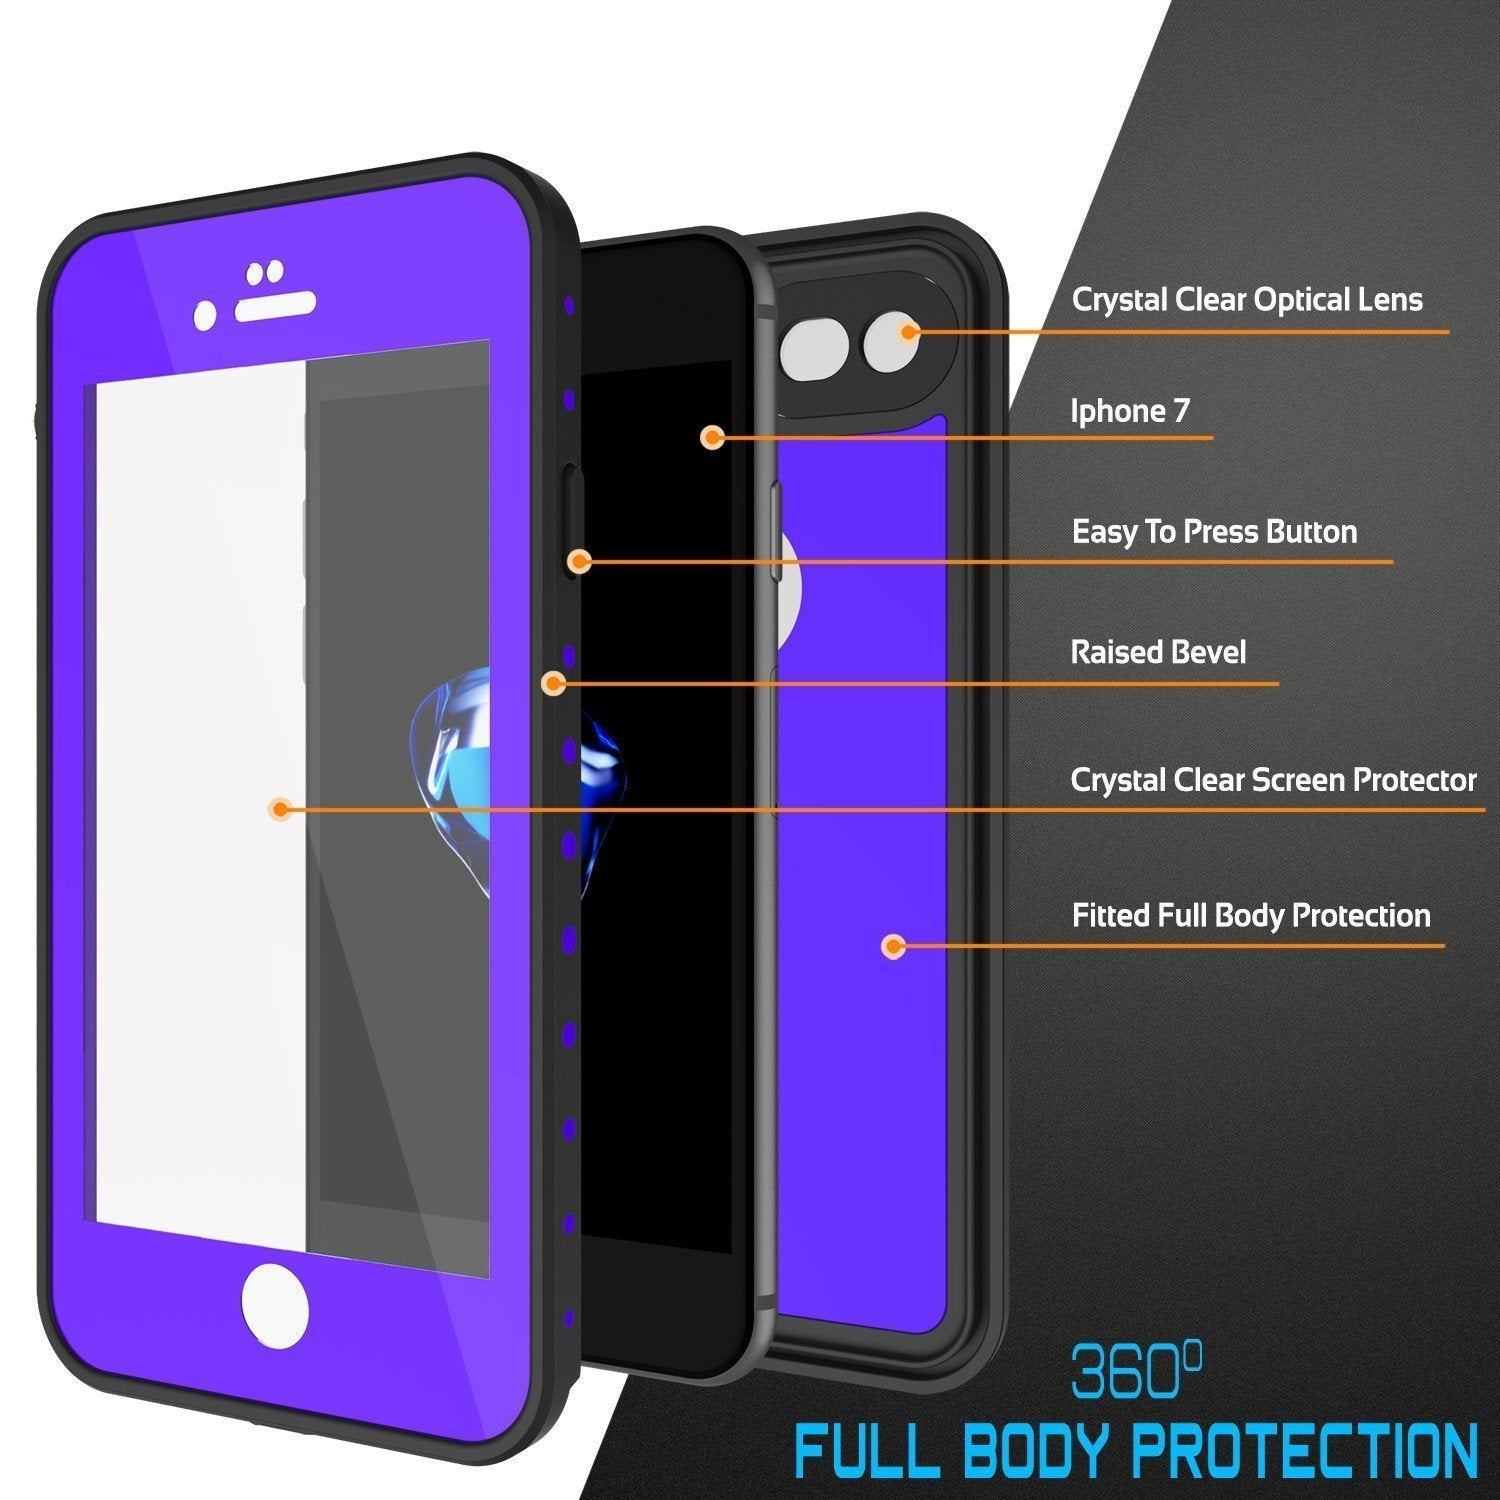 iPhone 8 Waterproof Case, Punkcase [Purple] [StudStar Series] [Slim Fit][IP68 Certified]  [Dirtproof] [Snowproof] - PunkCase NZ